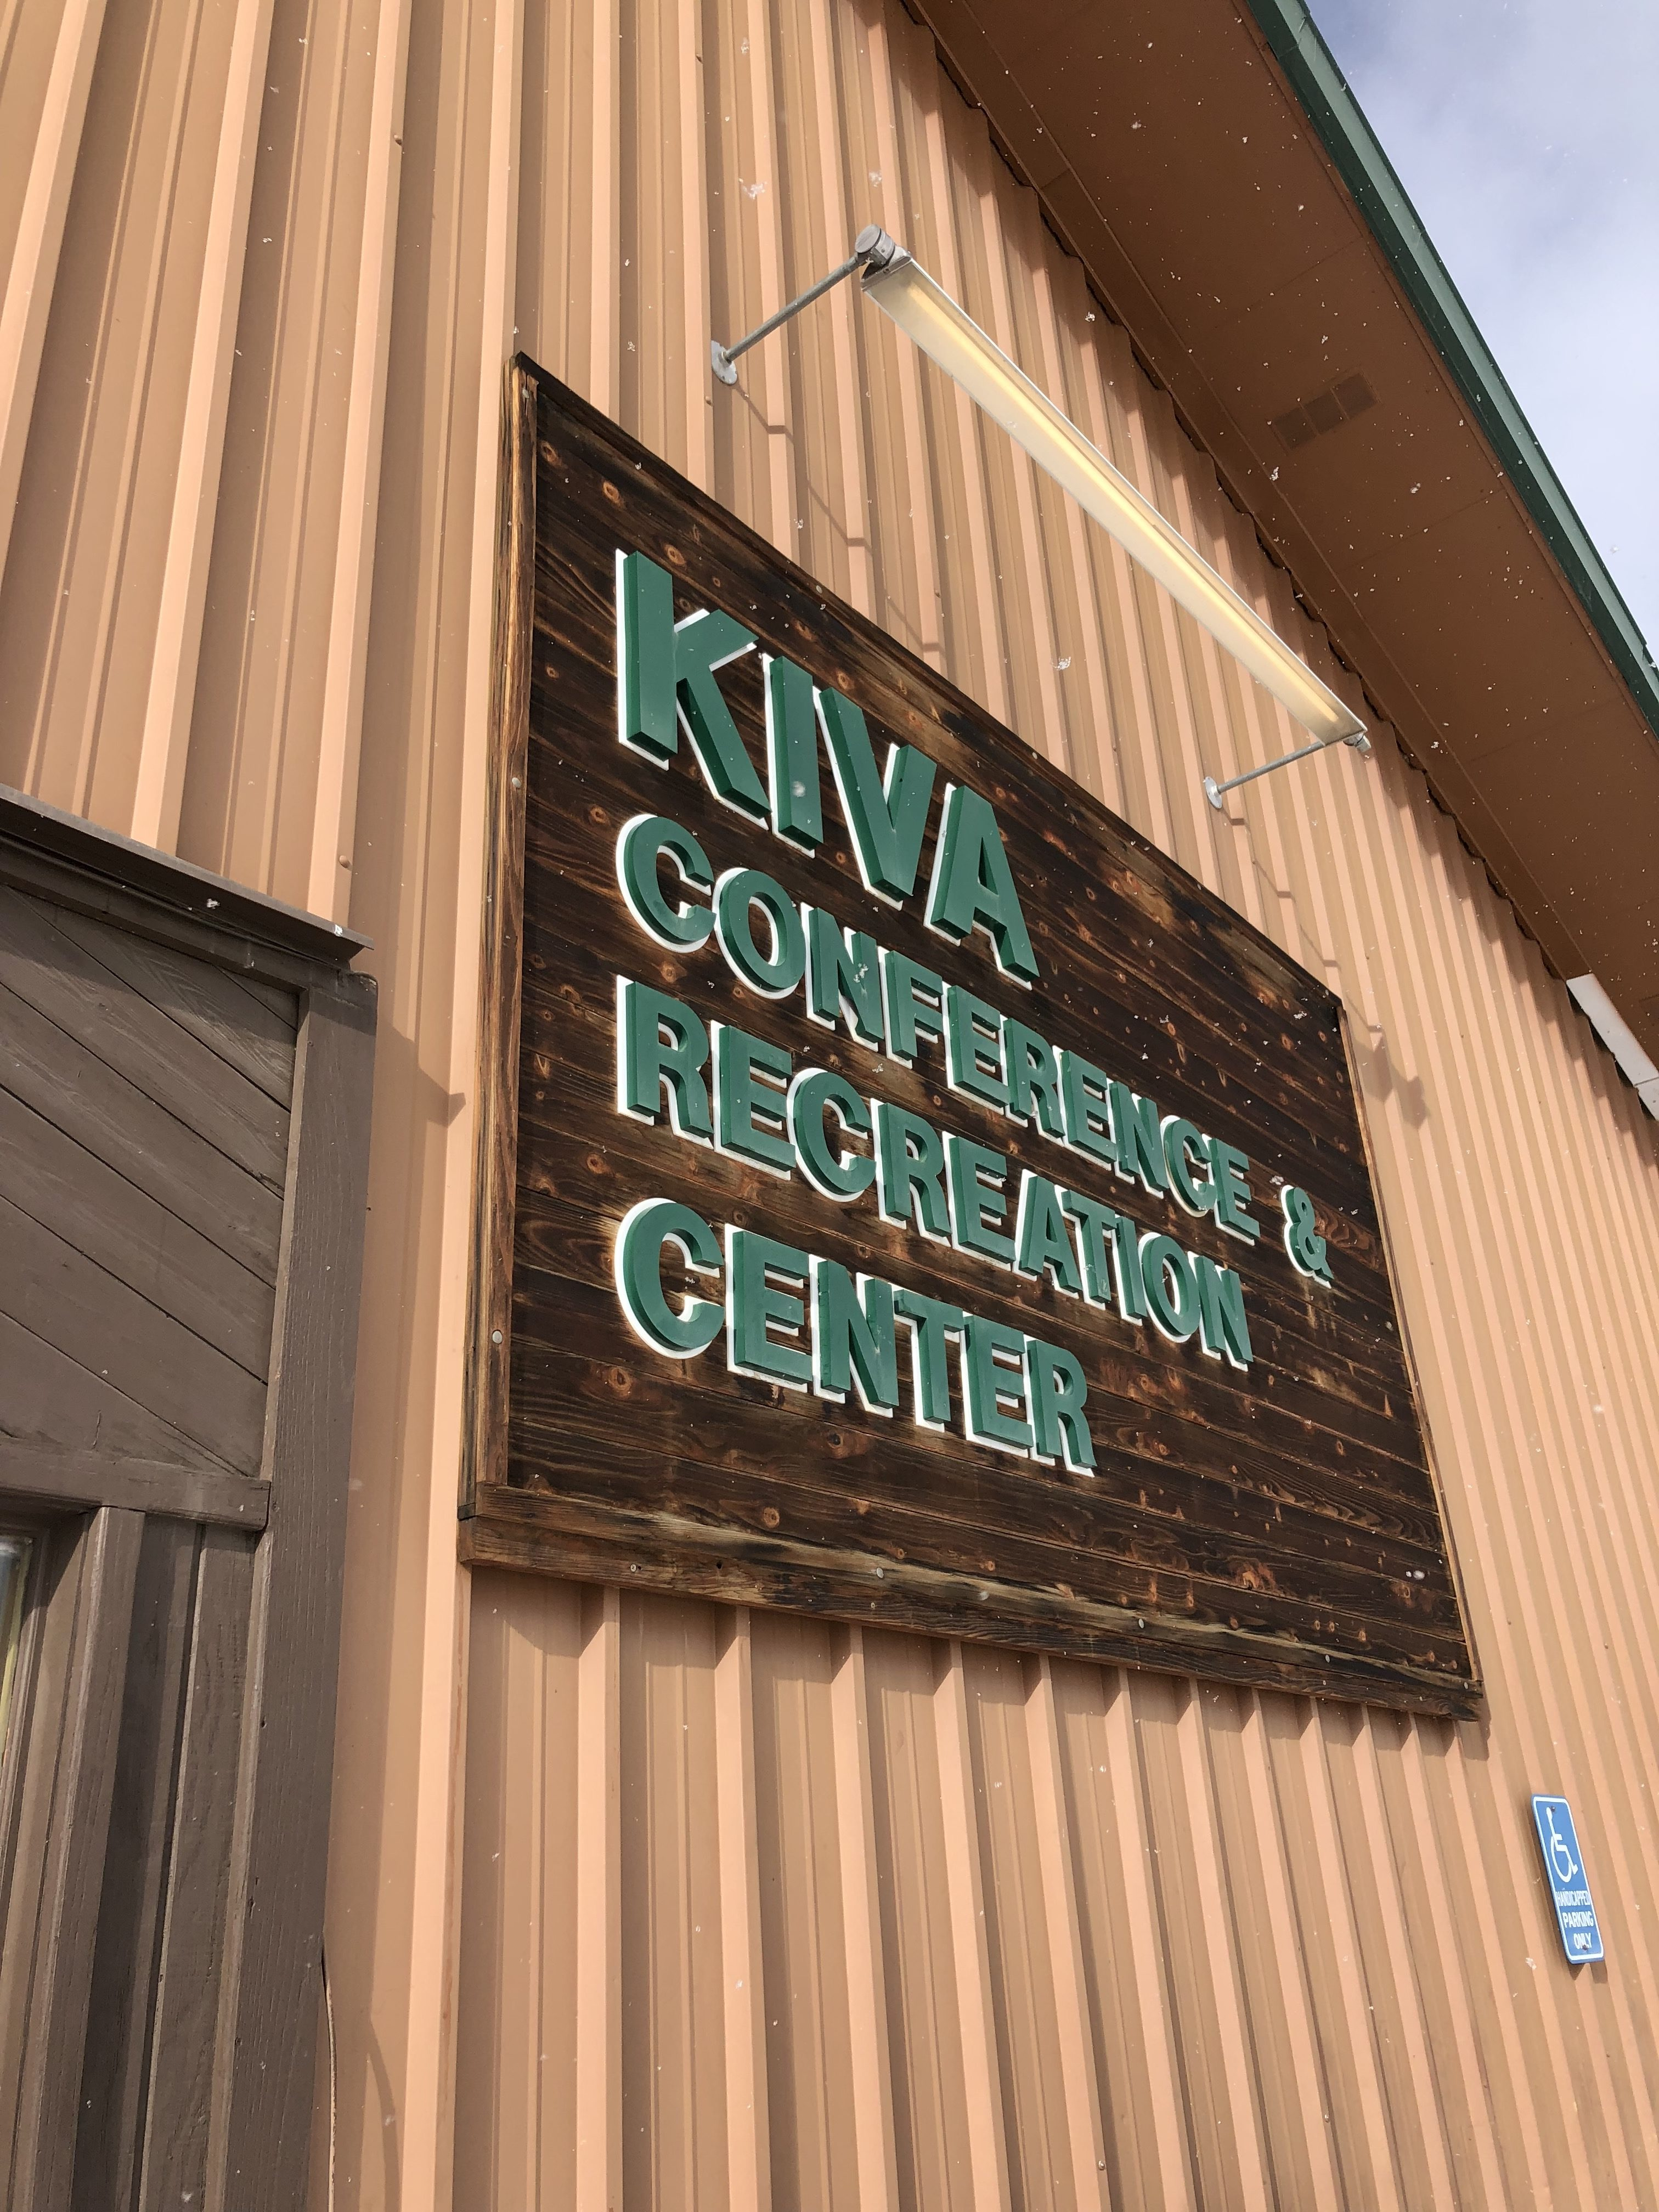 Kiva COnference and Recreation Center